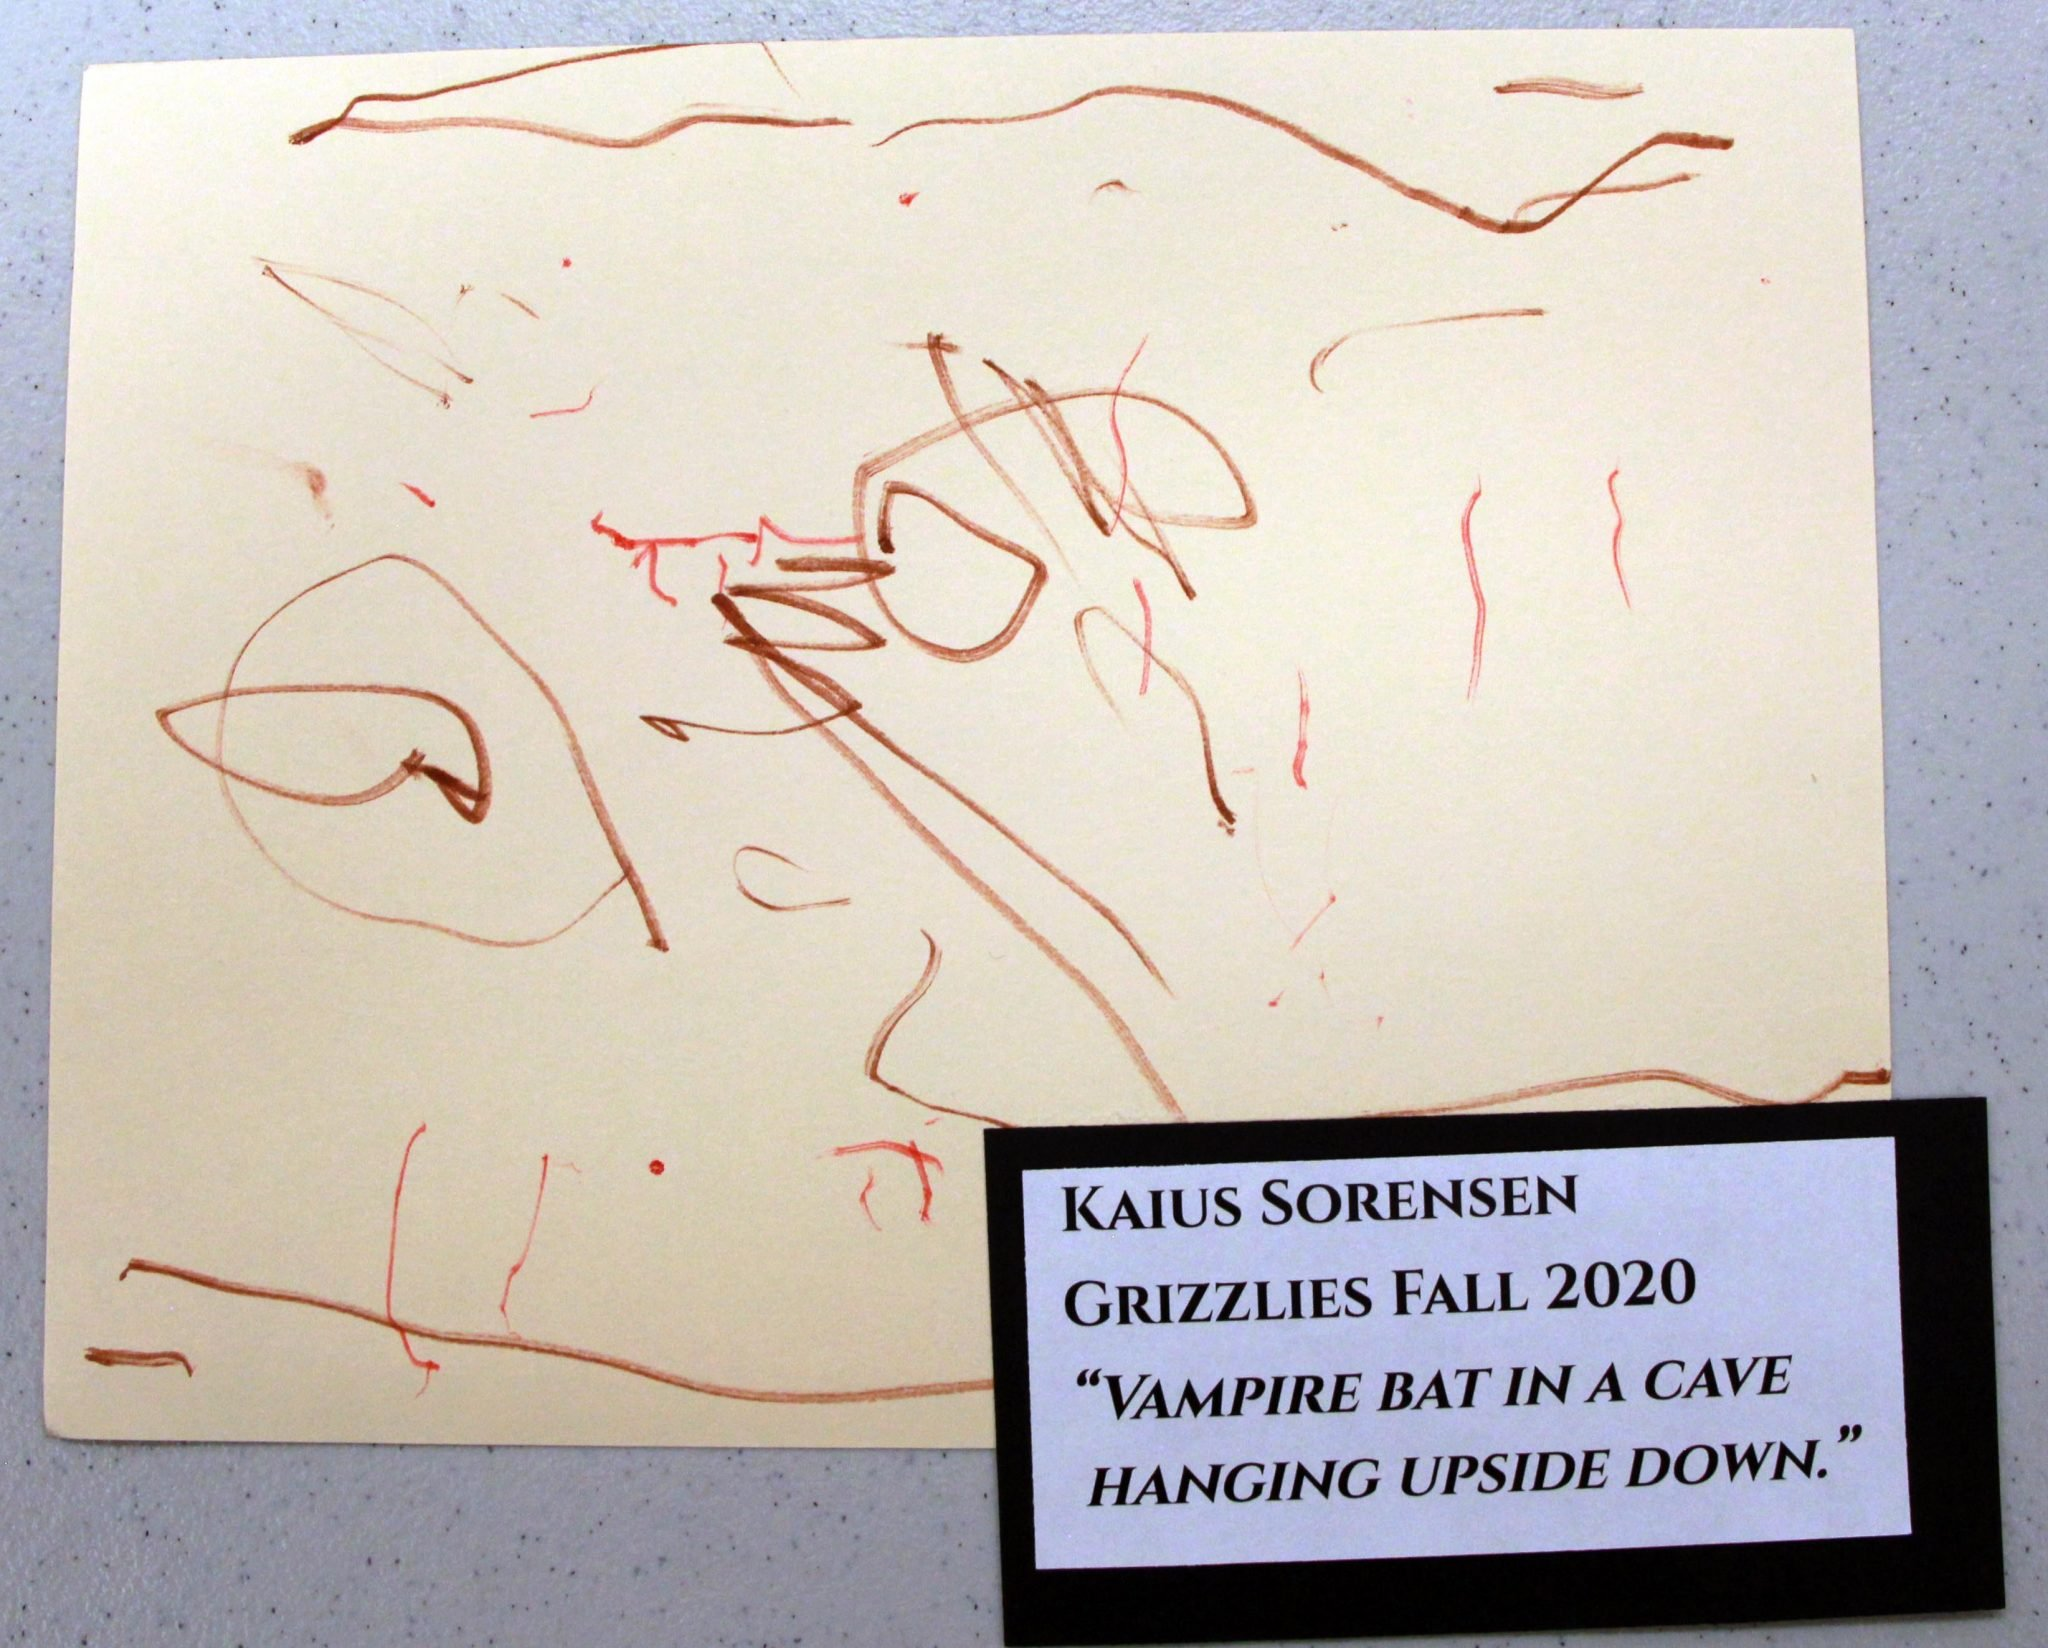 Kaius Sorensen, of Grizzlies group, drawing, Fall 2020